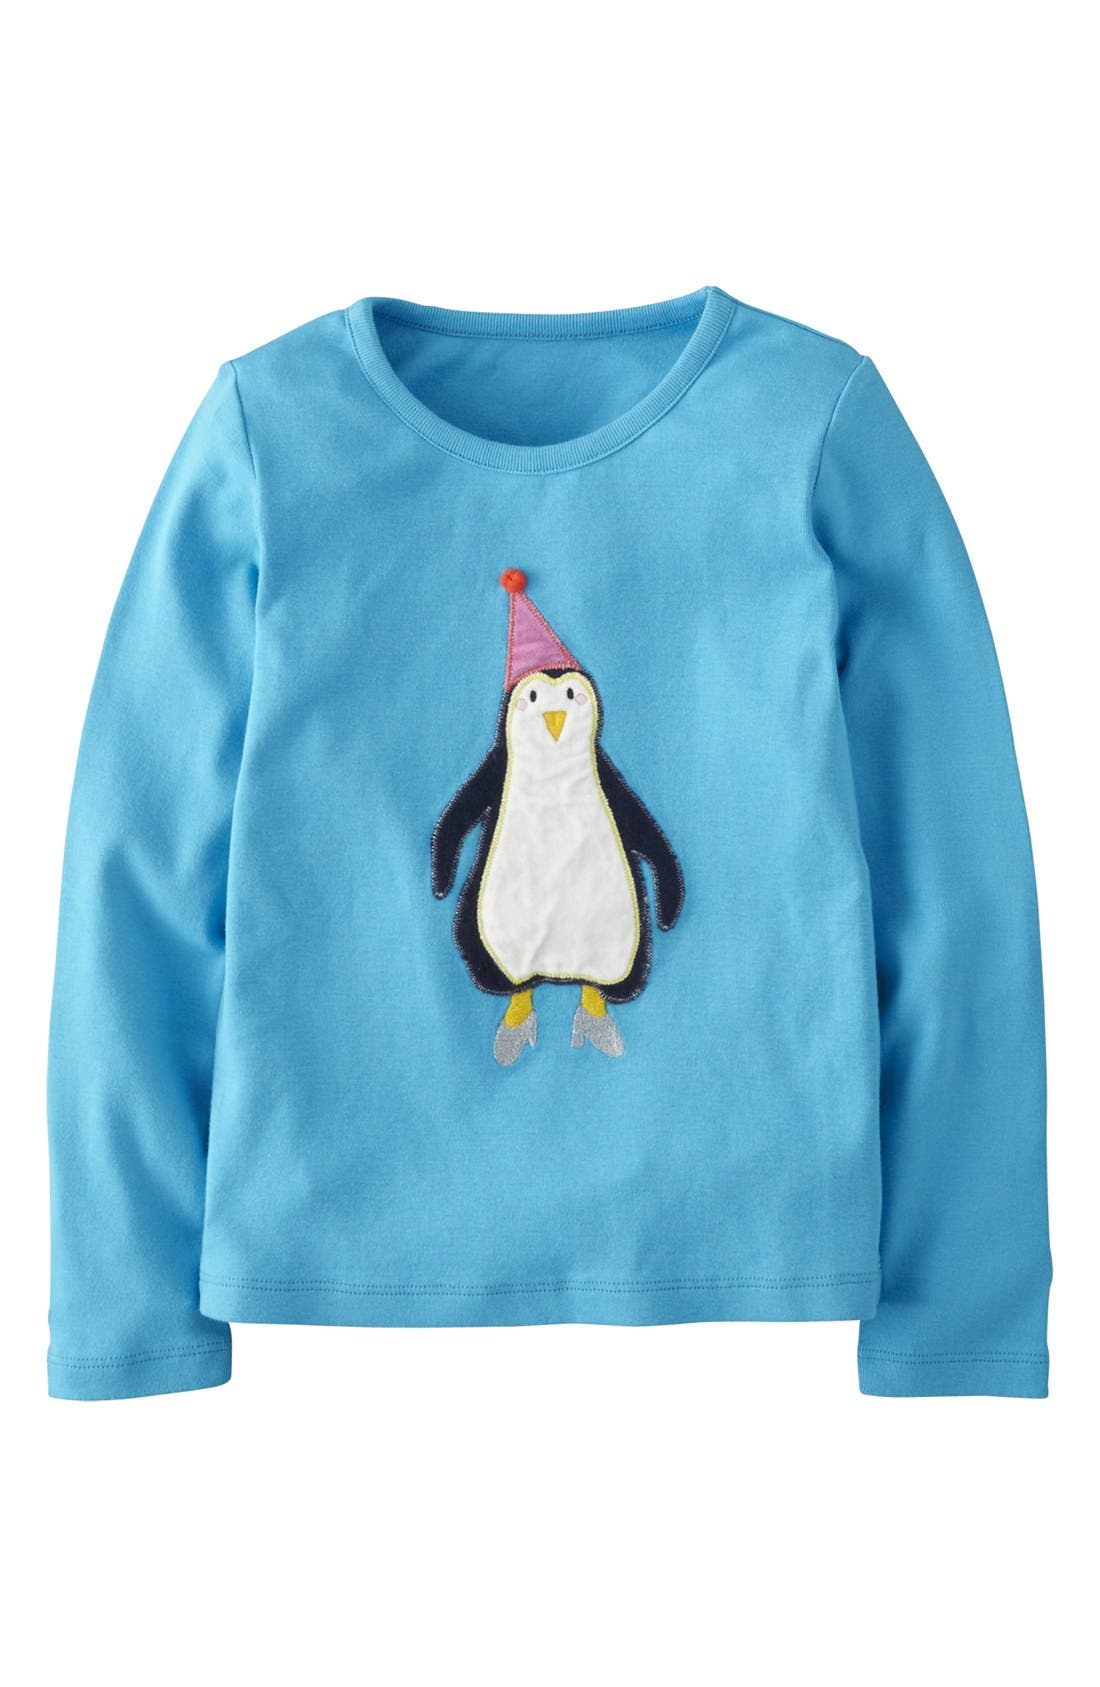 Main Image - Mini Boden Velvet Appliqué Long Sleeve Tee (Toddler Girls, Little Girls & Big Girls)